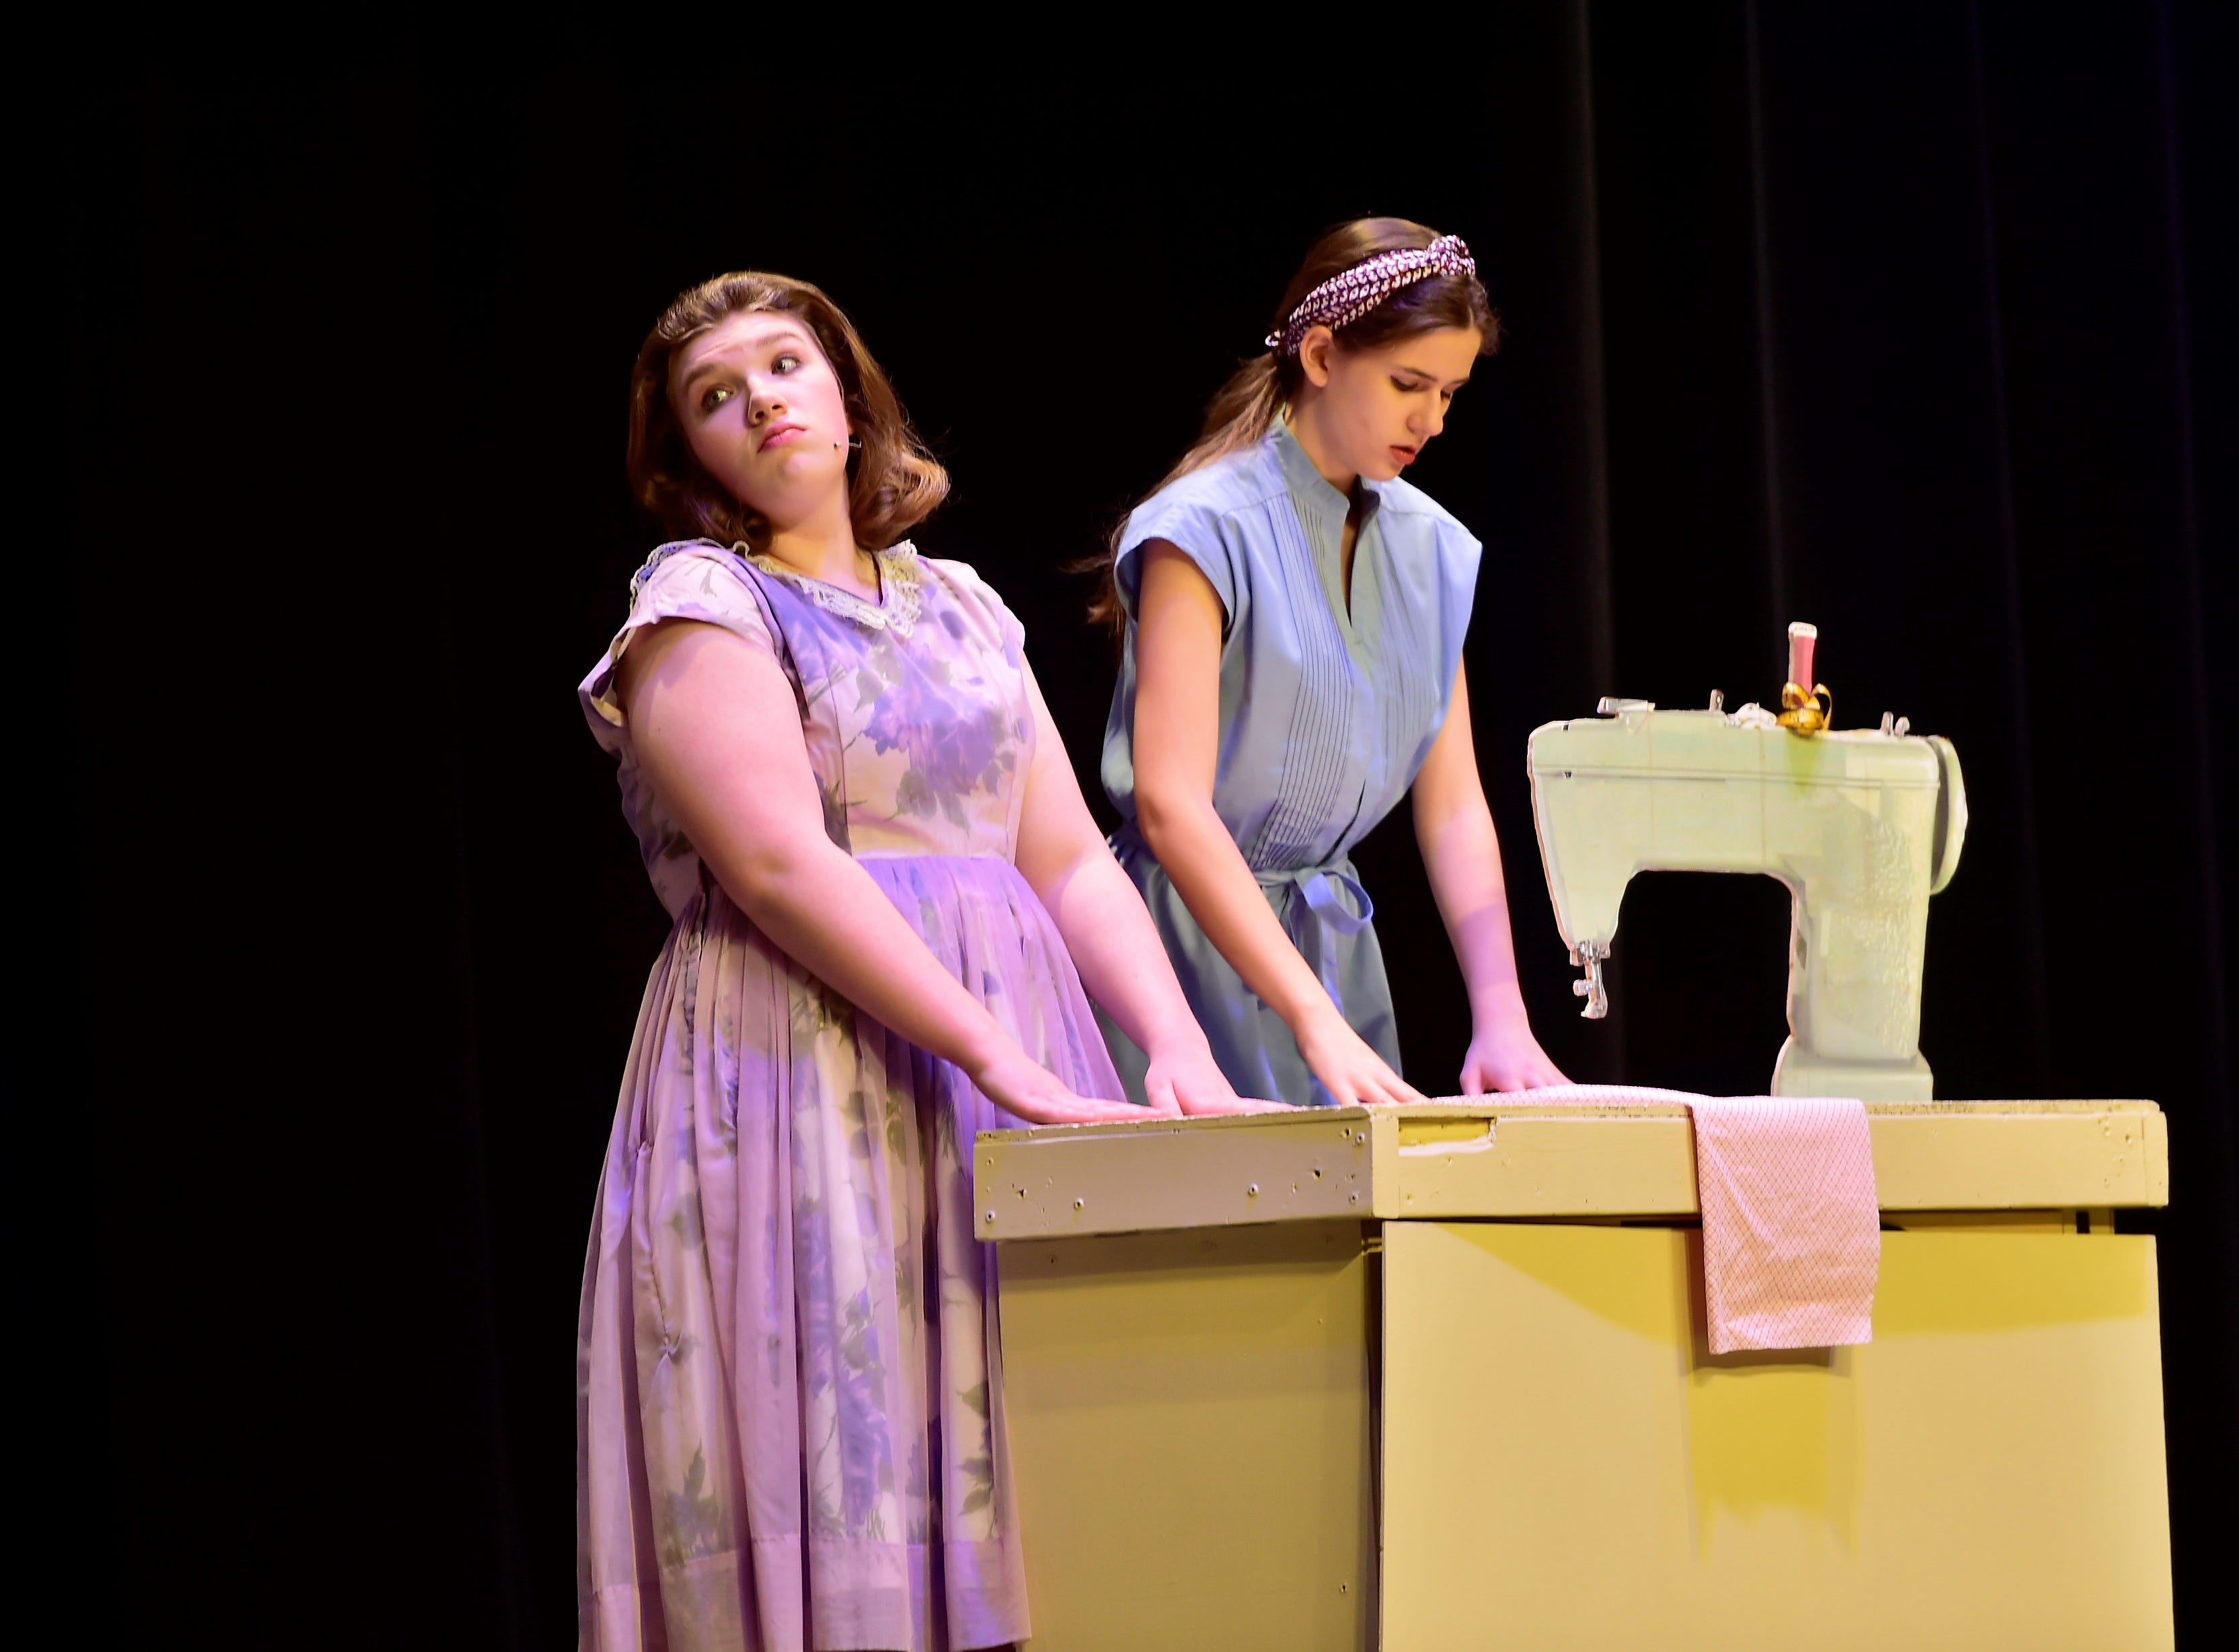 """Taylor Stevens (Babe), left, and Trinity Dant, rehearse a scene  from """"The Pajama Game,"""" on Sunday, March 10, 2019, at Waynesboro Area Senior High School. The musical, based on the 1953 novel, """"7 1/2 Cents"""" by Richard Bissell, tells the story of a pajama factory where workers are fighting for a raise of 7 1/2 cents. Showtimes for Waynesboro Area School District's All-School Production of """"The Pajama Game"""" are 7 p.m. Friday and Saturday, March 15 and 16, and 2 p.m. Sunday, March 17 in the high school auditorium. For choose-your-seat tickets, $10 for adults and $6 for children under 12, go to https://washsmusic.ticketleap.com/the-pajama-game/. General admission tickets will also be sold at the door."""